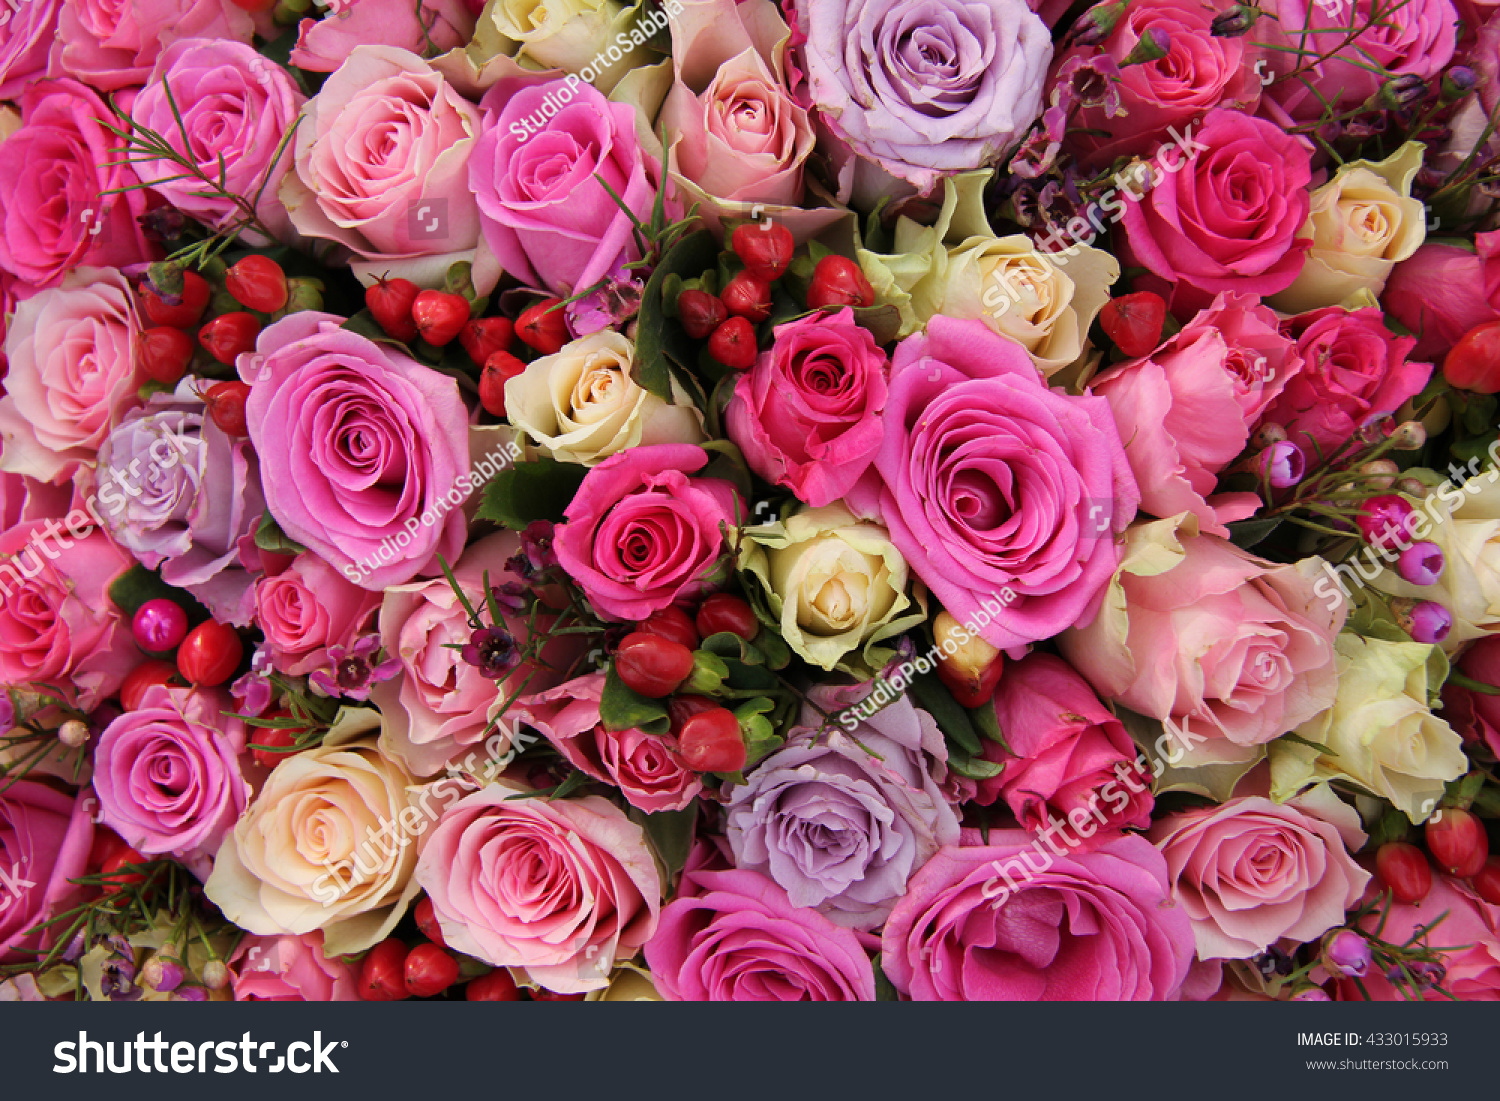 Various Shades Pink Roses Wedding Centerpiece Stock Photo (Edit Now ...